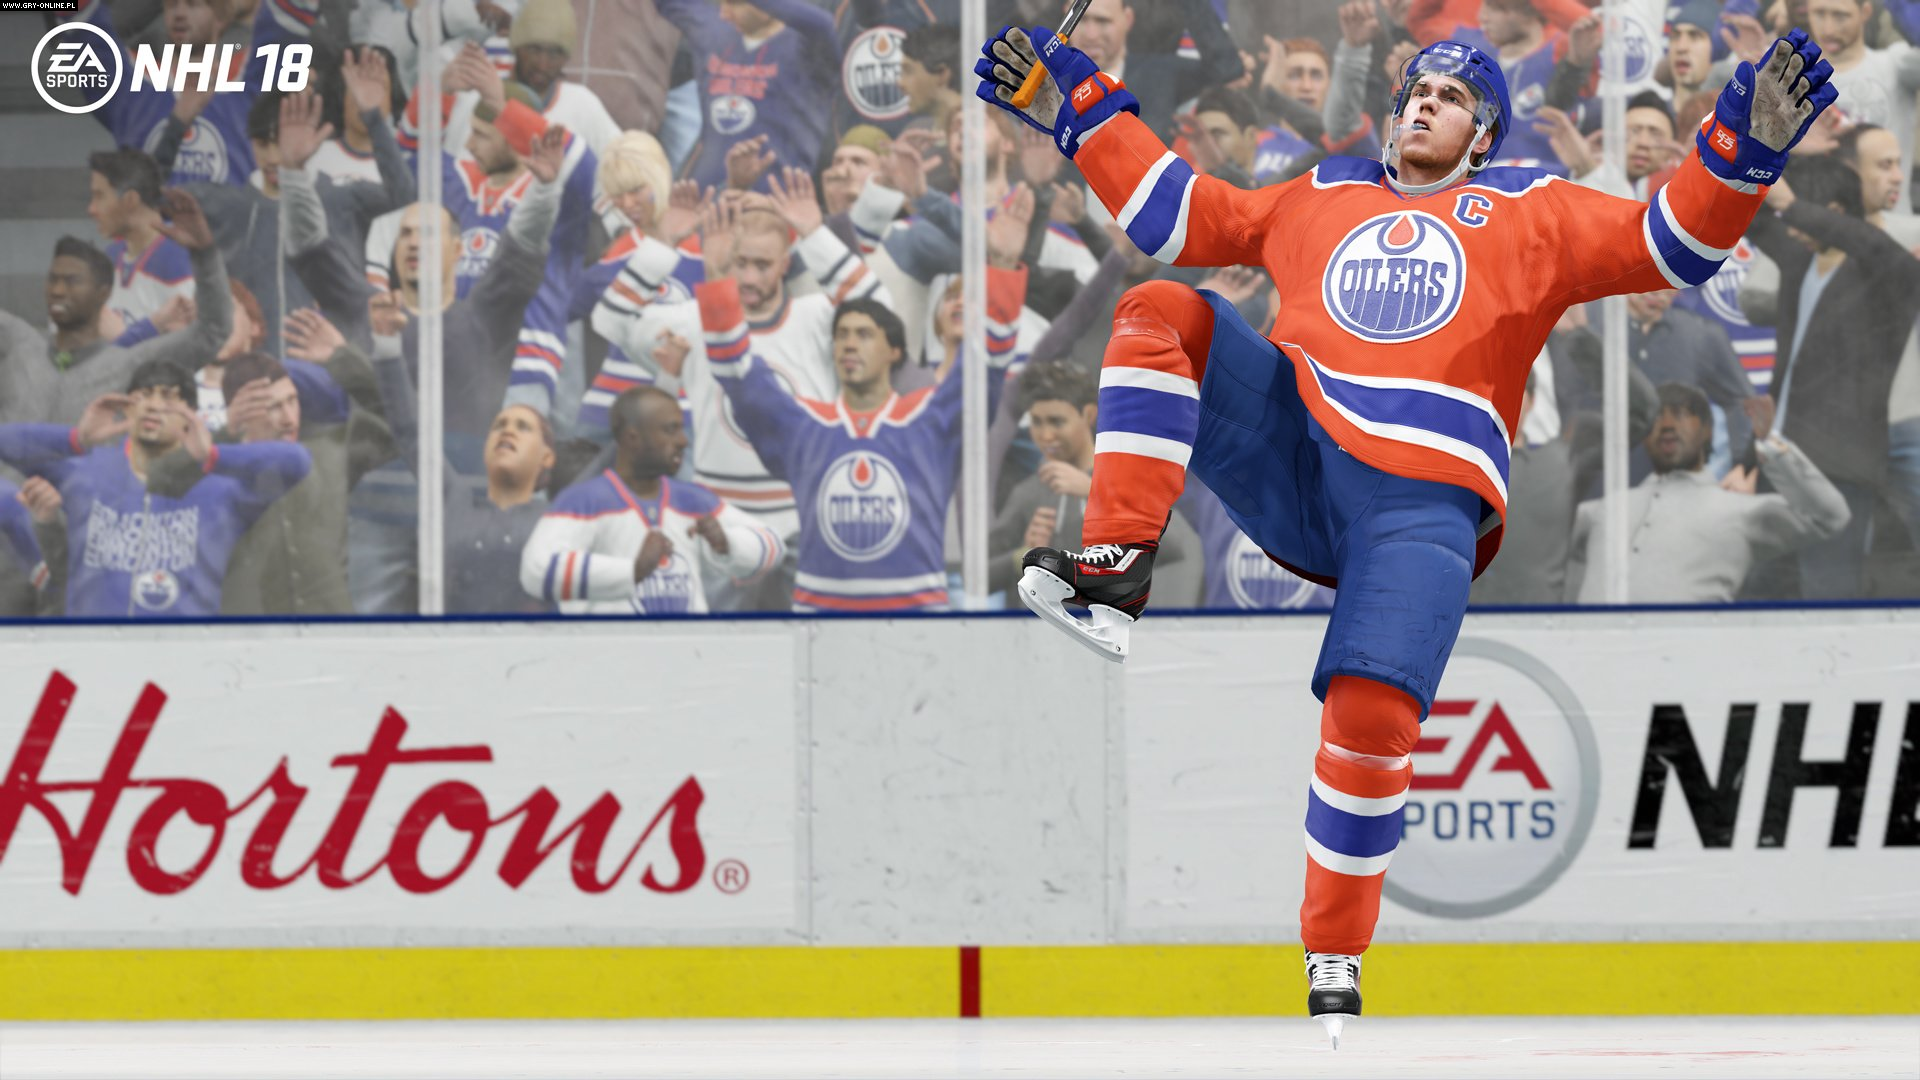 NHL 18 PS4, XONE Games Image 9/9, EA Sports, Electronic Arts Inc.